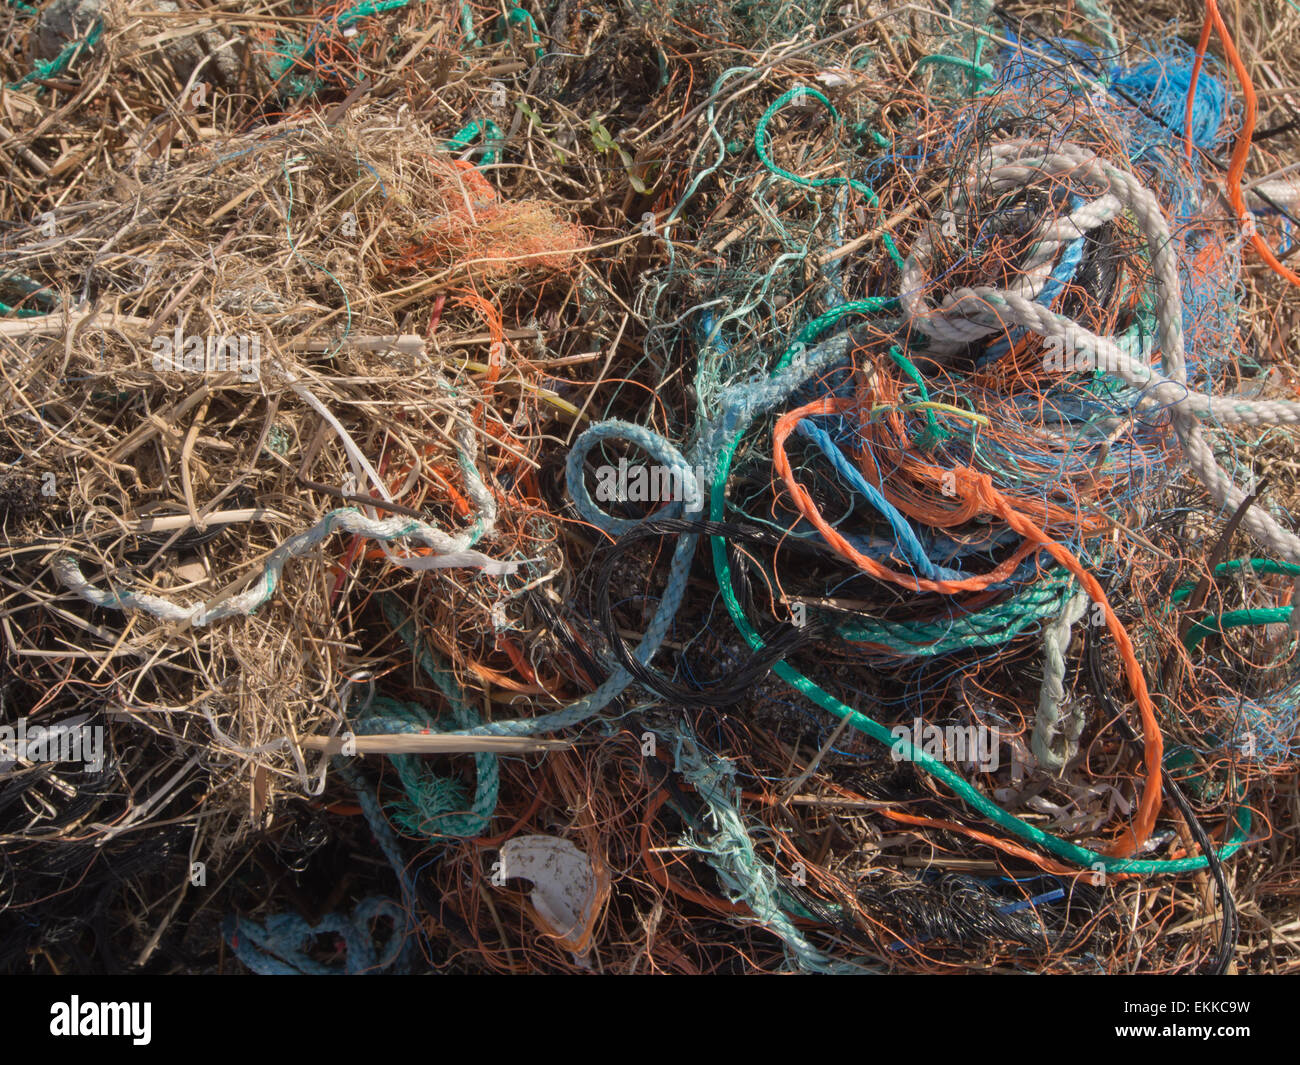 A colourful  tangled mess of lines and rope washed ashore from the North Sea during a winter storm - Stock Image